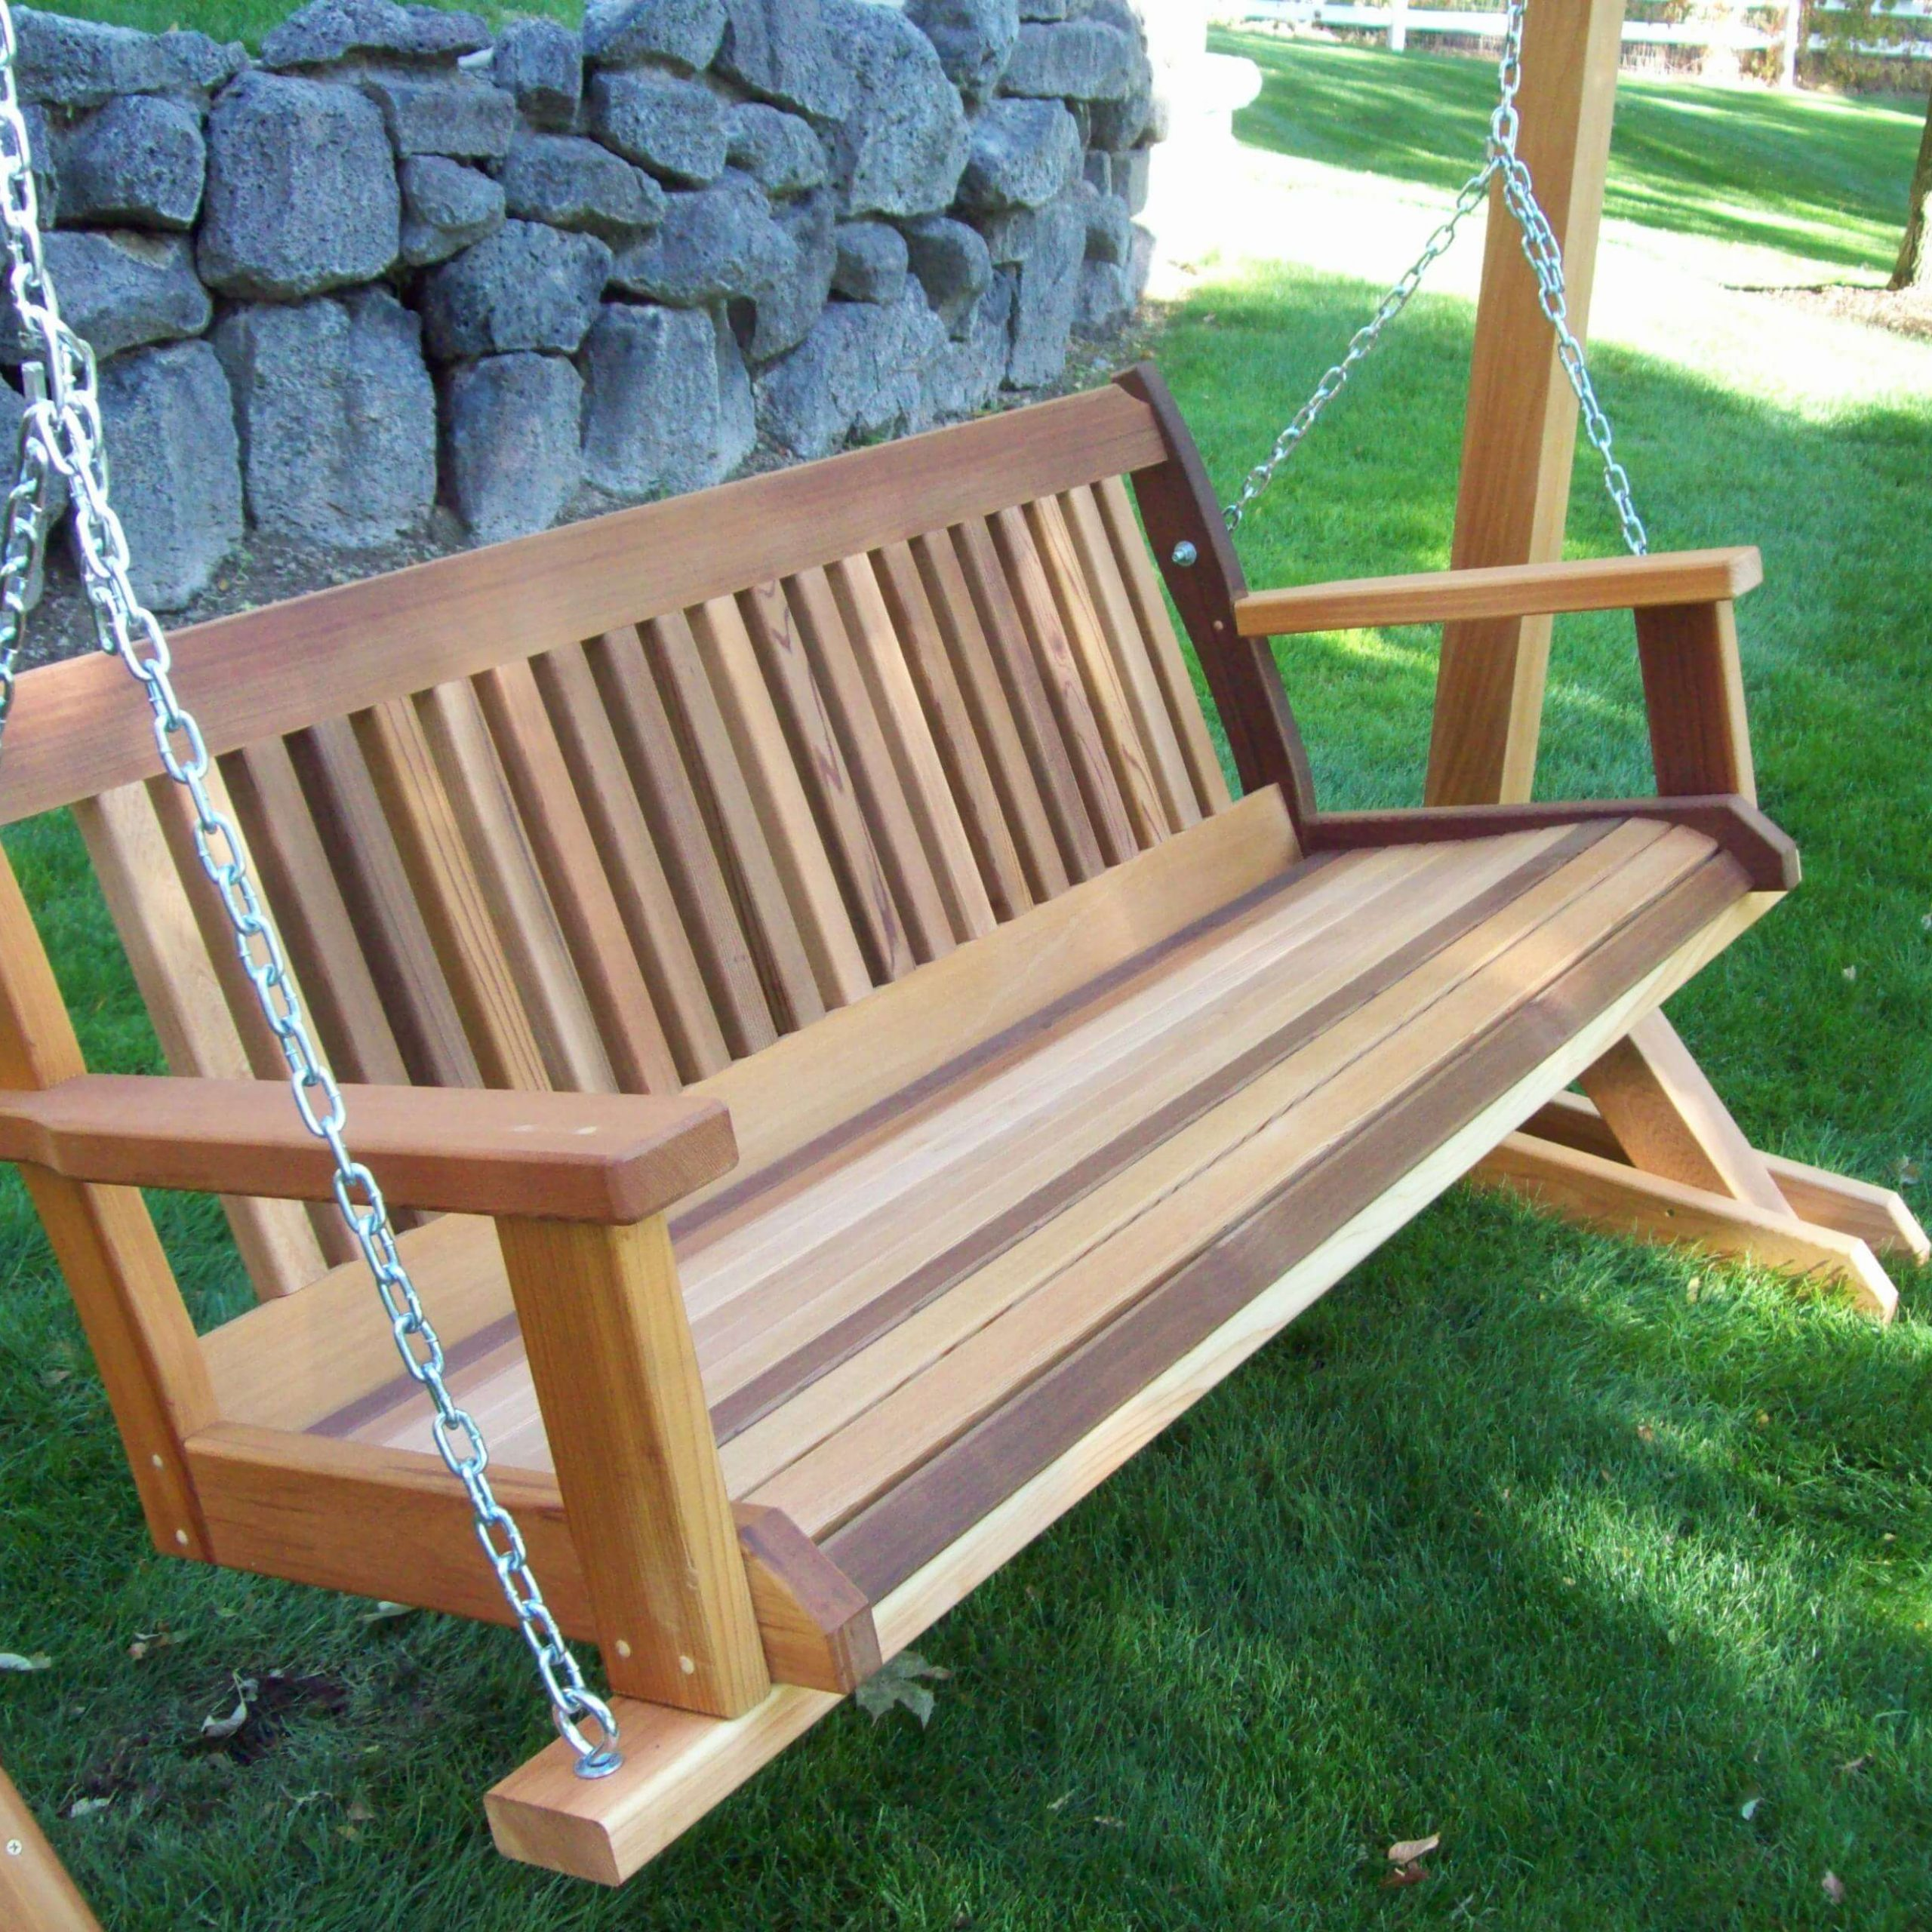 Best Porch Swing Reviews & Guide | The Hammock Expert With Regard To Hardwood Hanging Porch Swings With Stand (View 7 of 25)